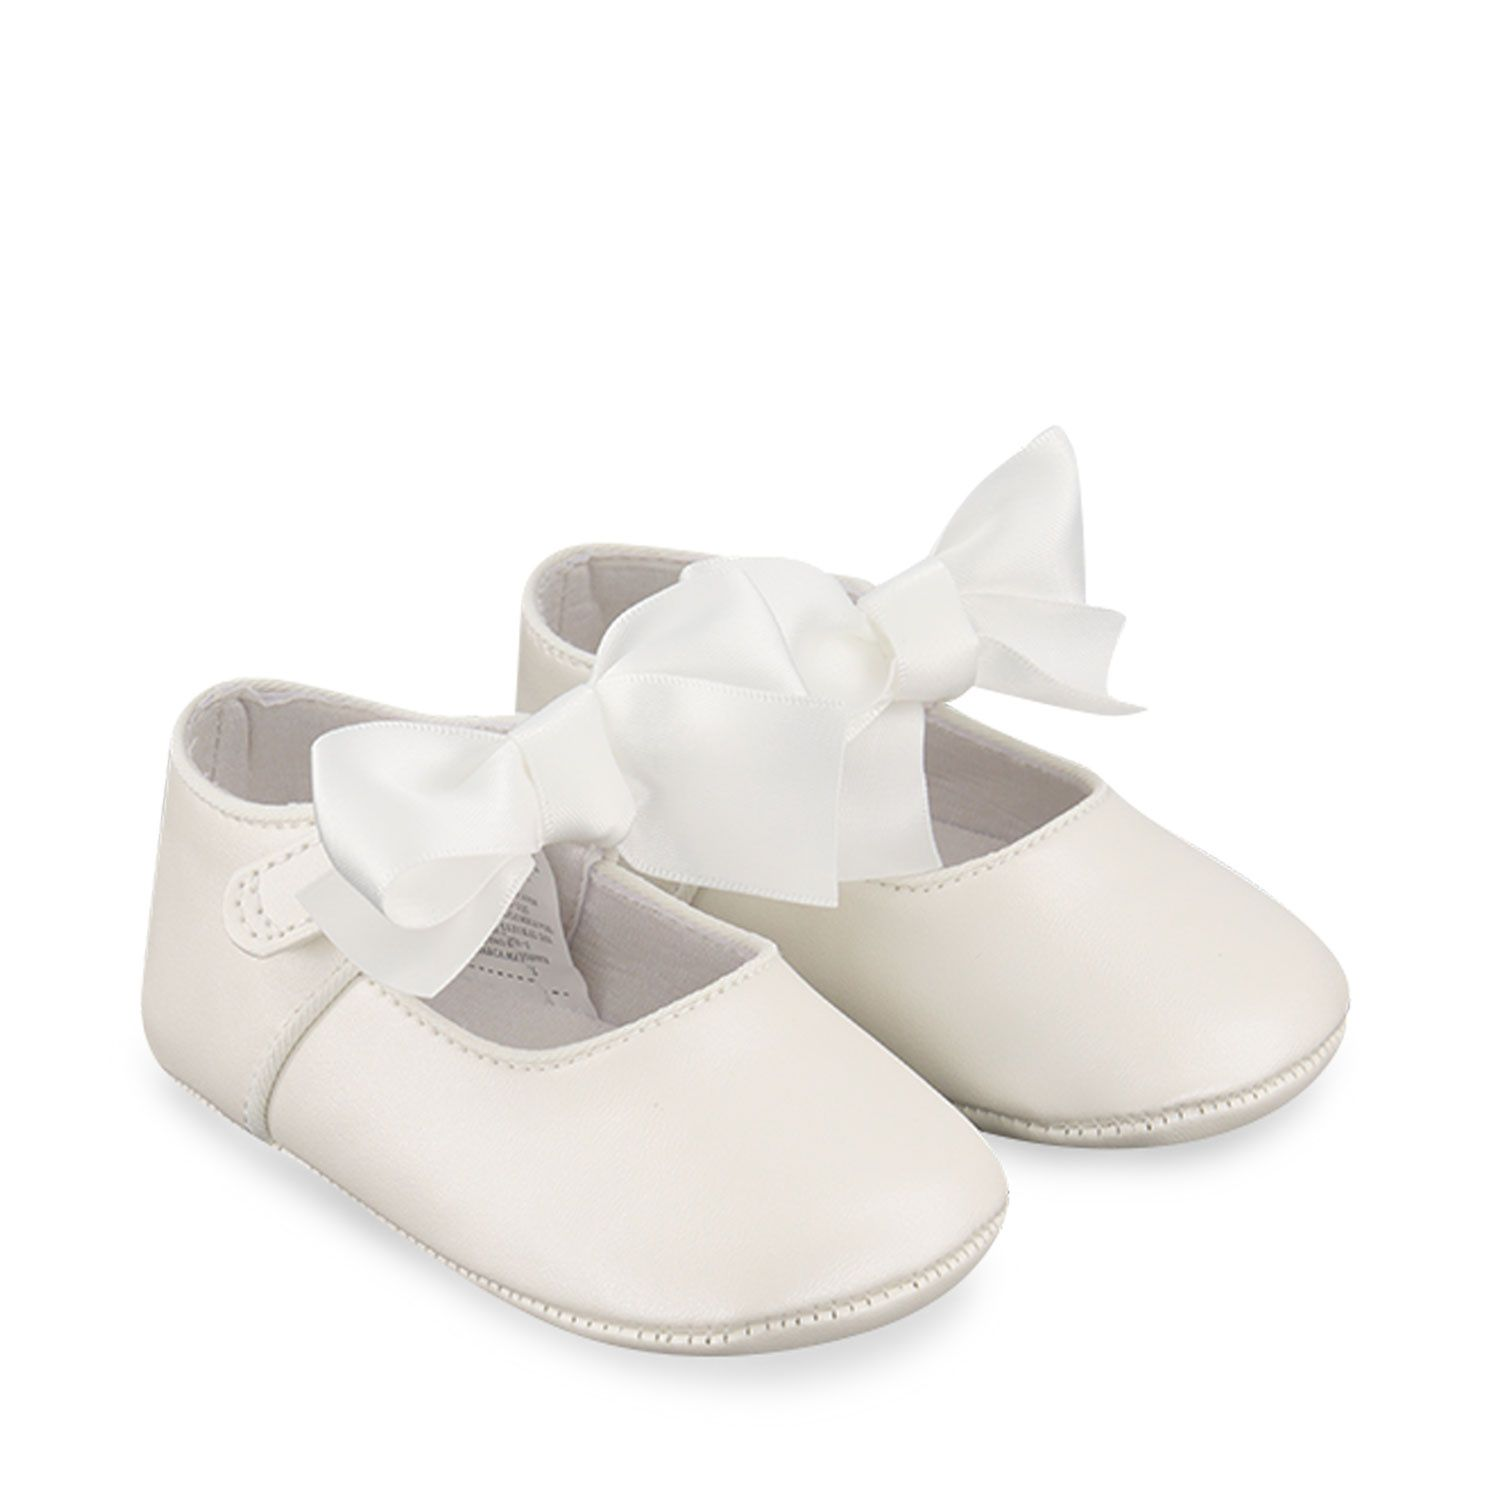 Picture of Mayoral 9404 baby shoes white